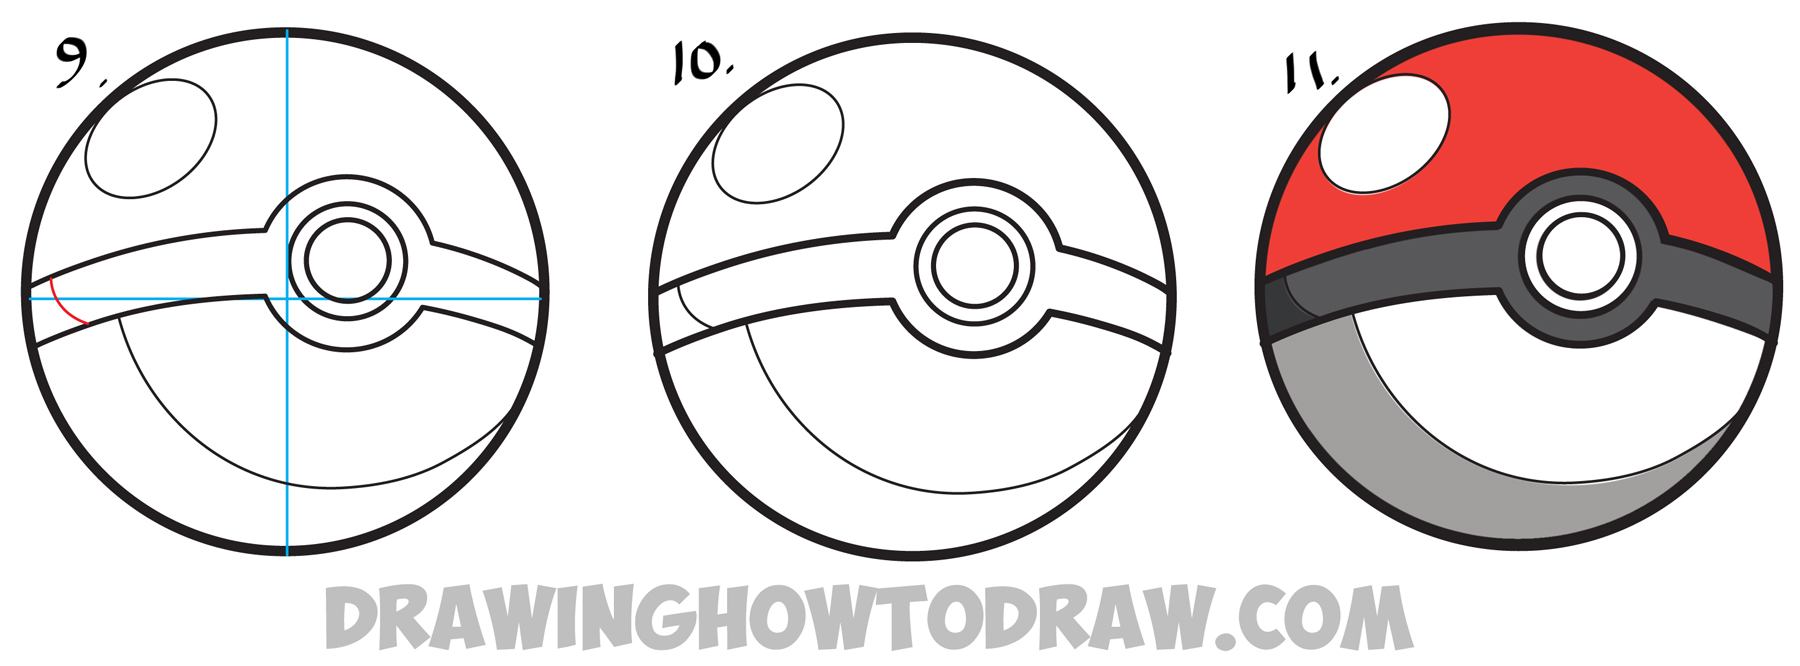 Drawn pokeball drawing Pokemon from Lesson Easy Drawing